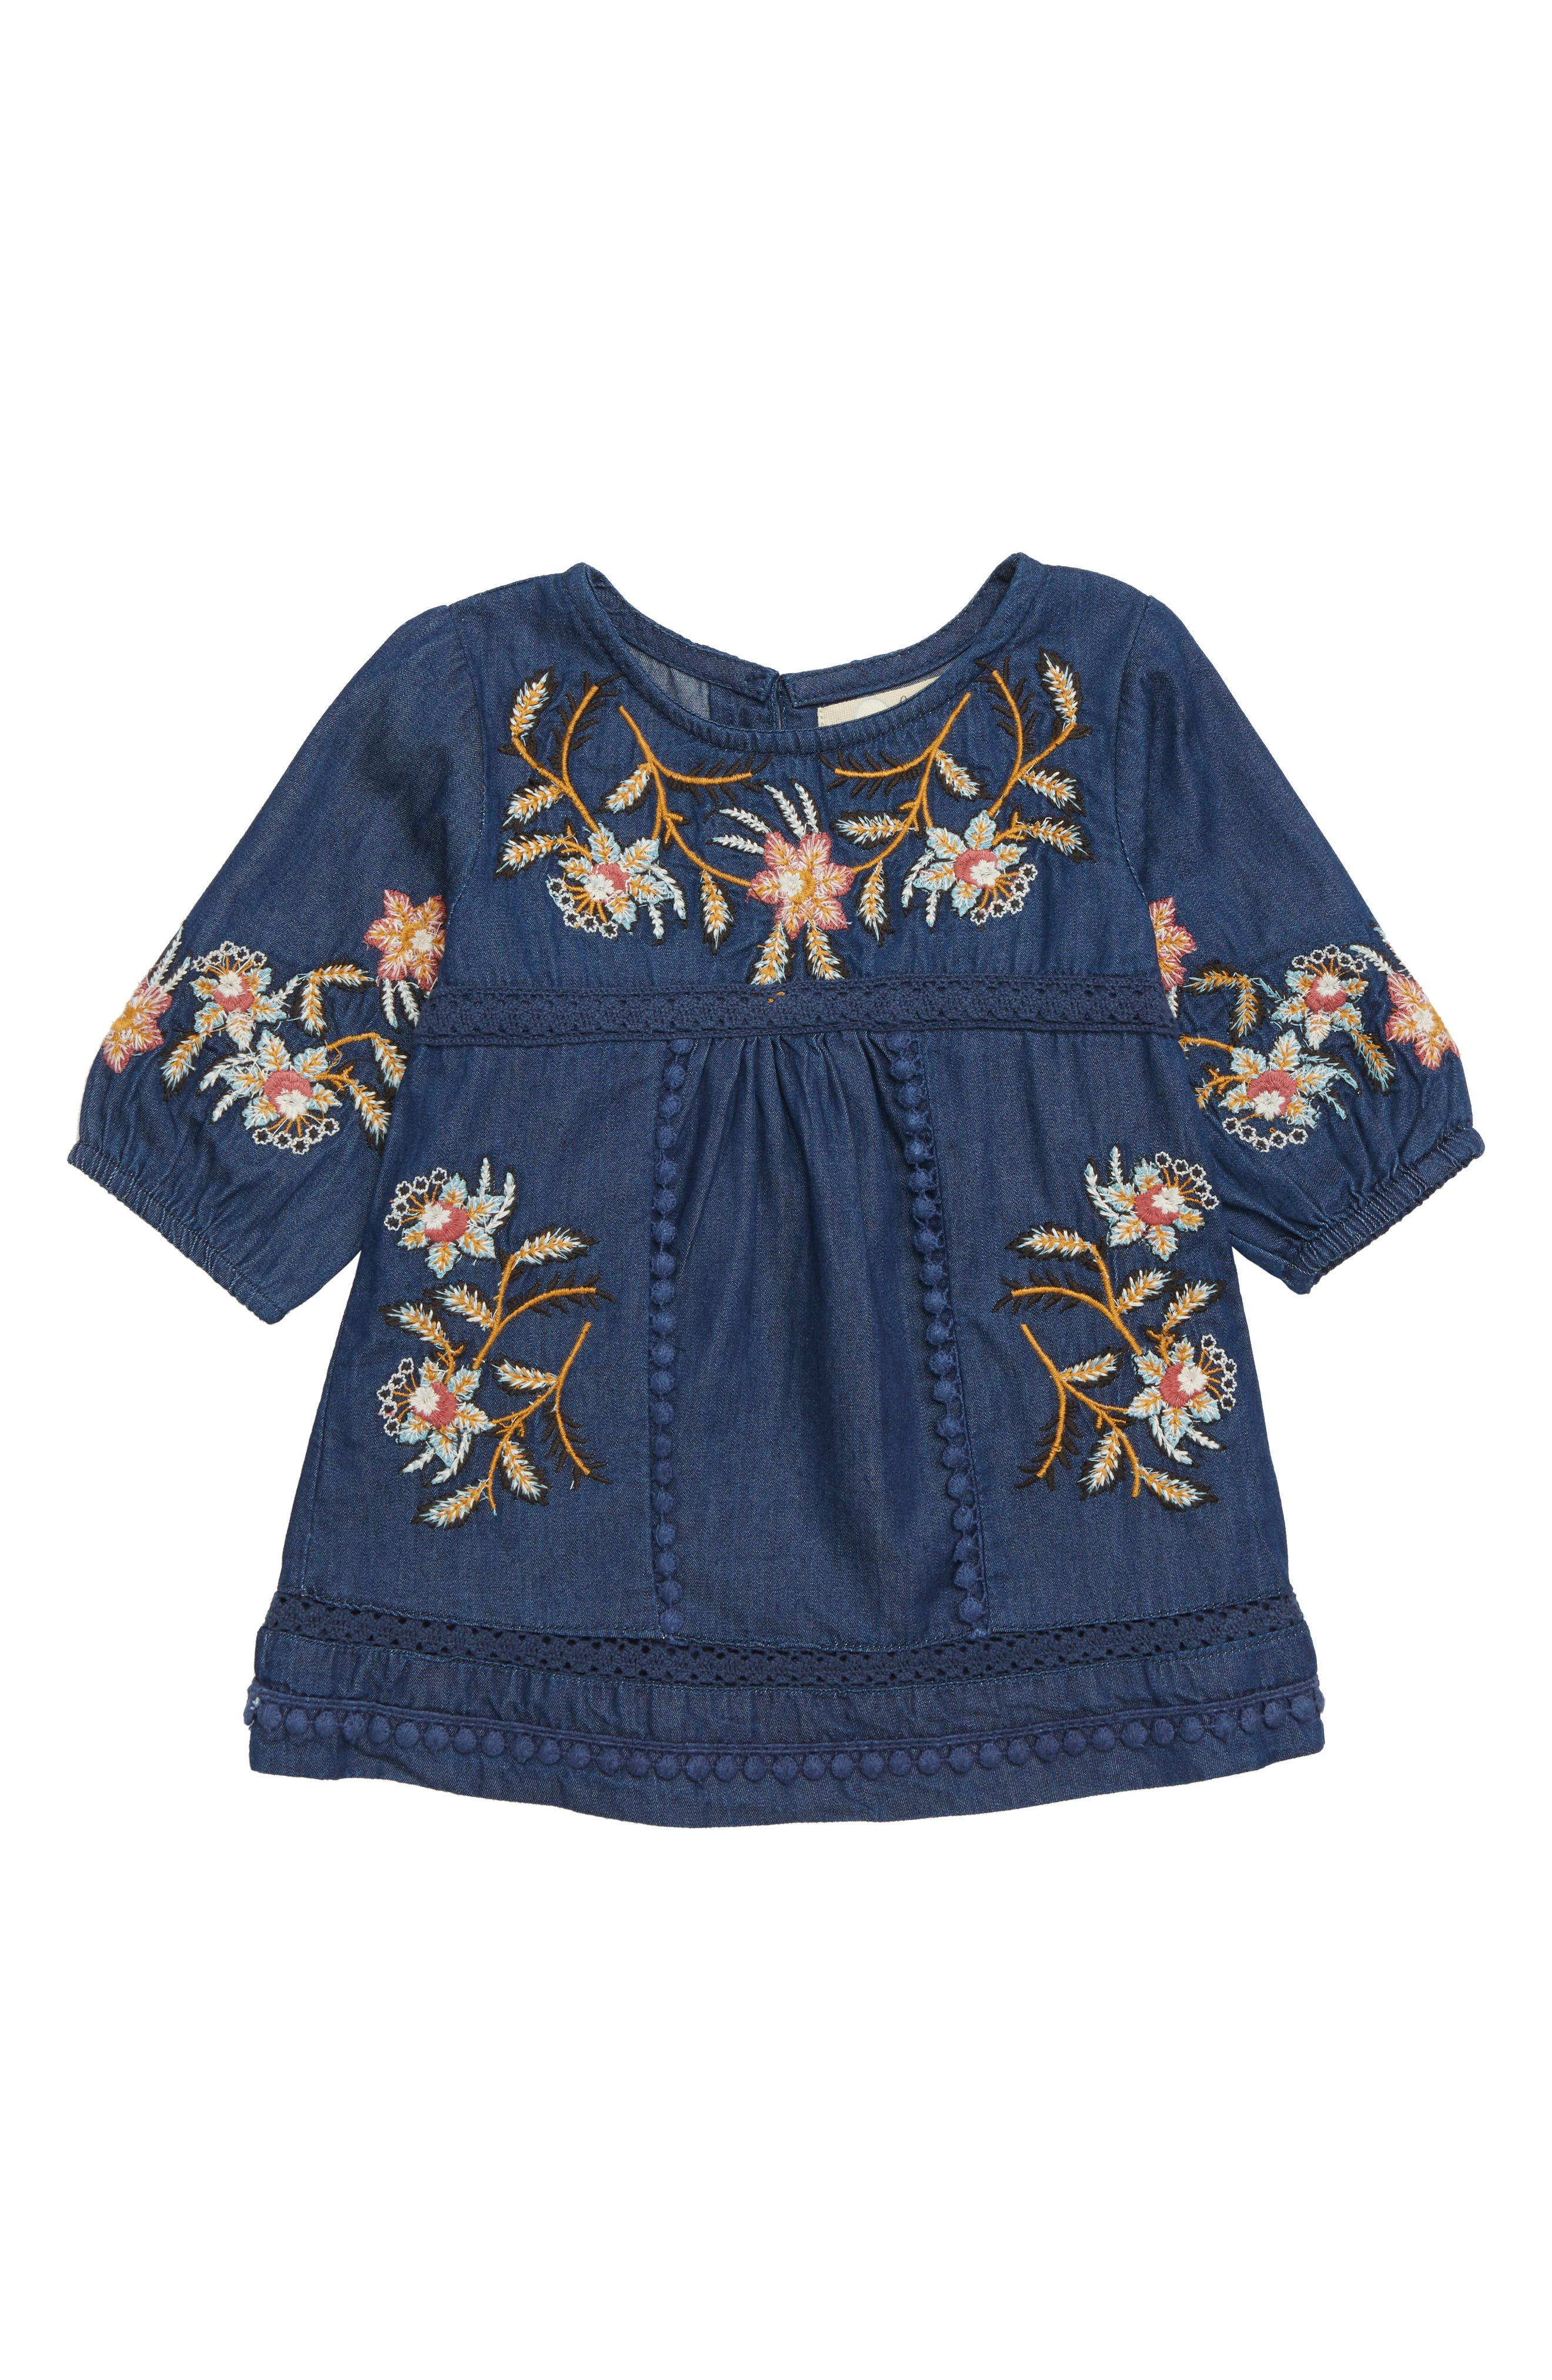 Peek Willow Embroidered Denim Dress,                             Main thumbnail 1, color,                             NAVY